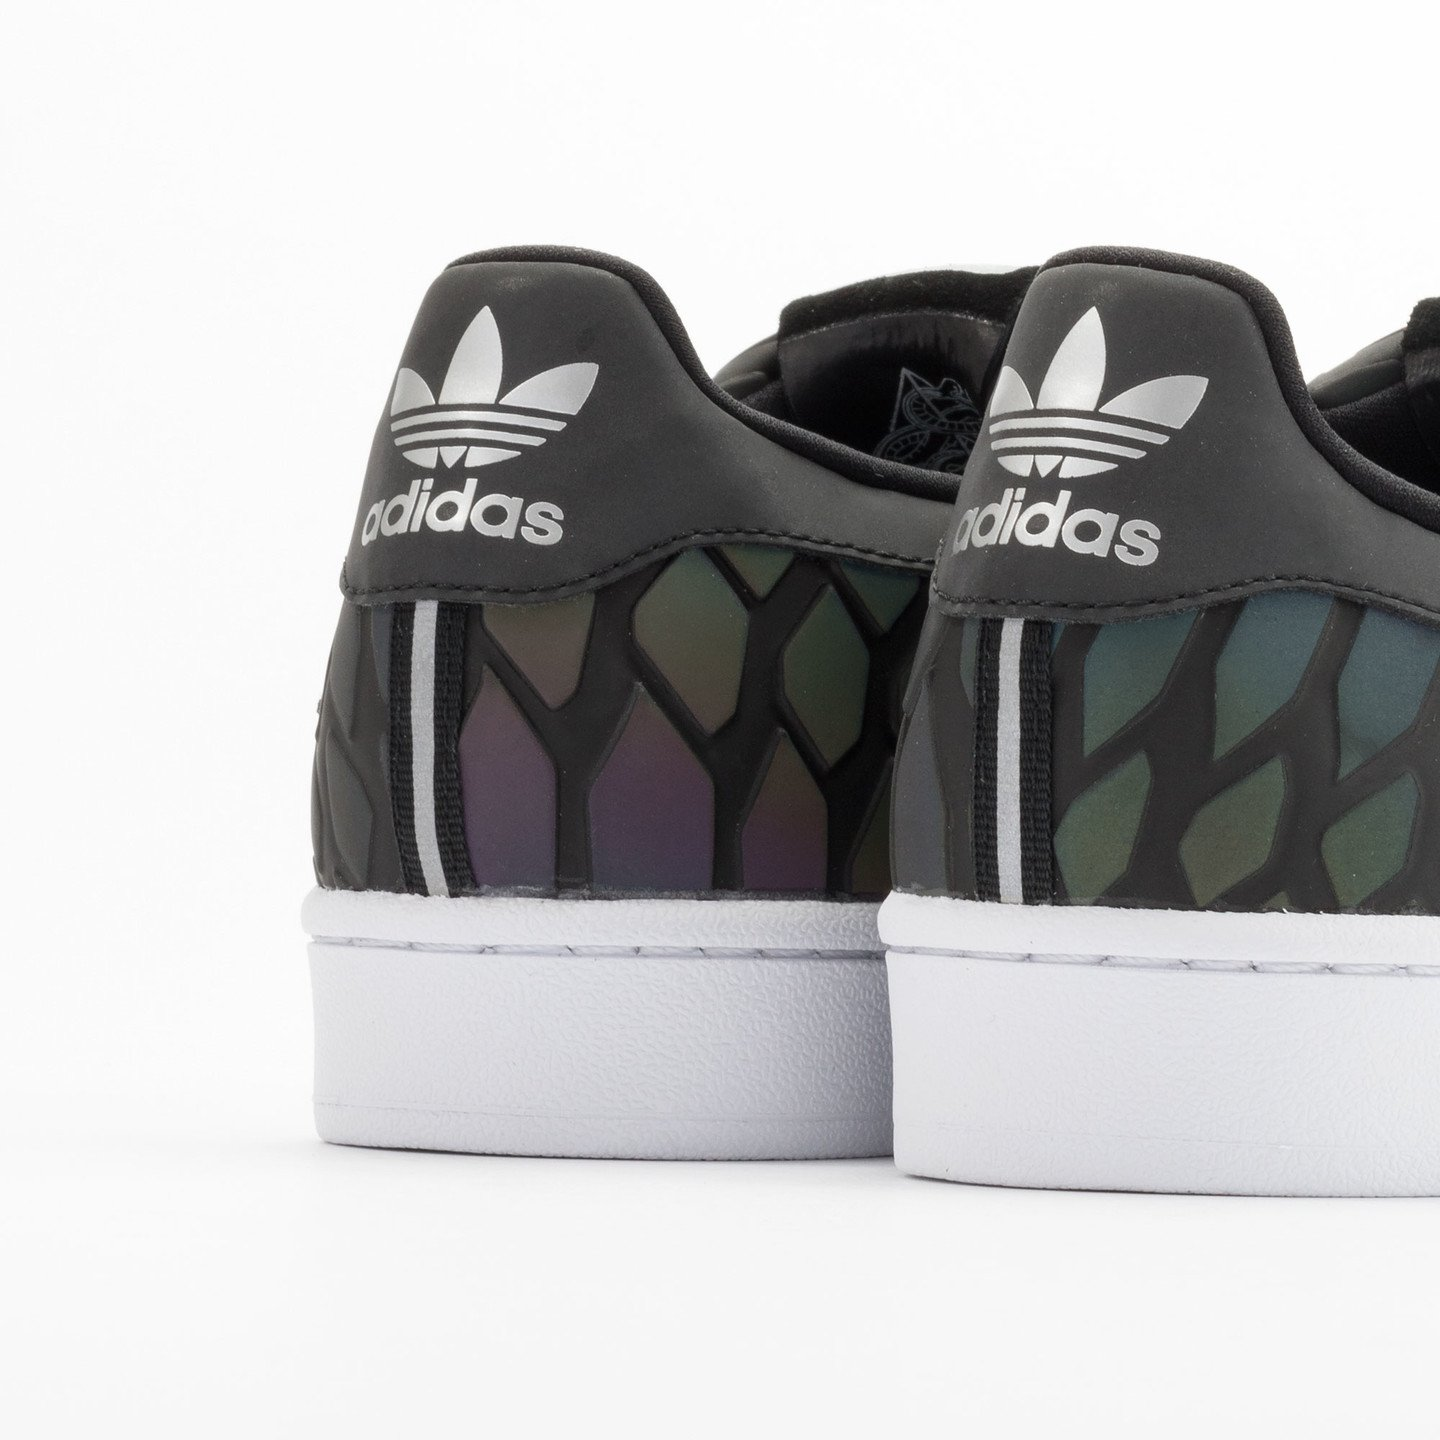 Adidas Superstar Xeno Pack Cblack / Supcol / Ftwwht D69366-44